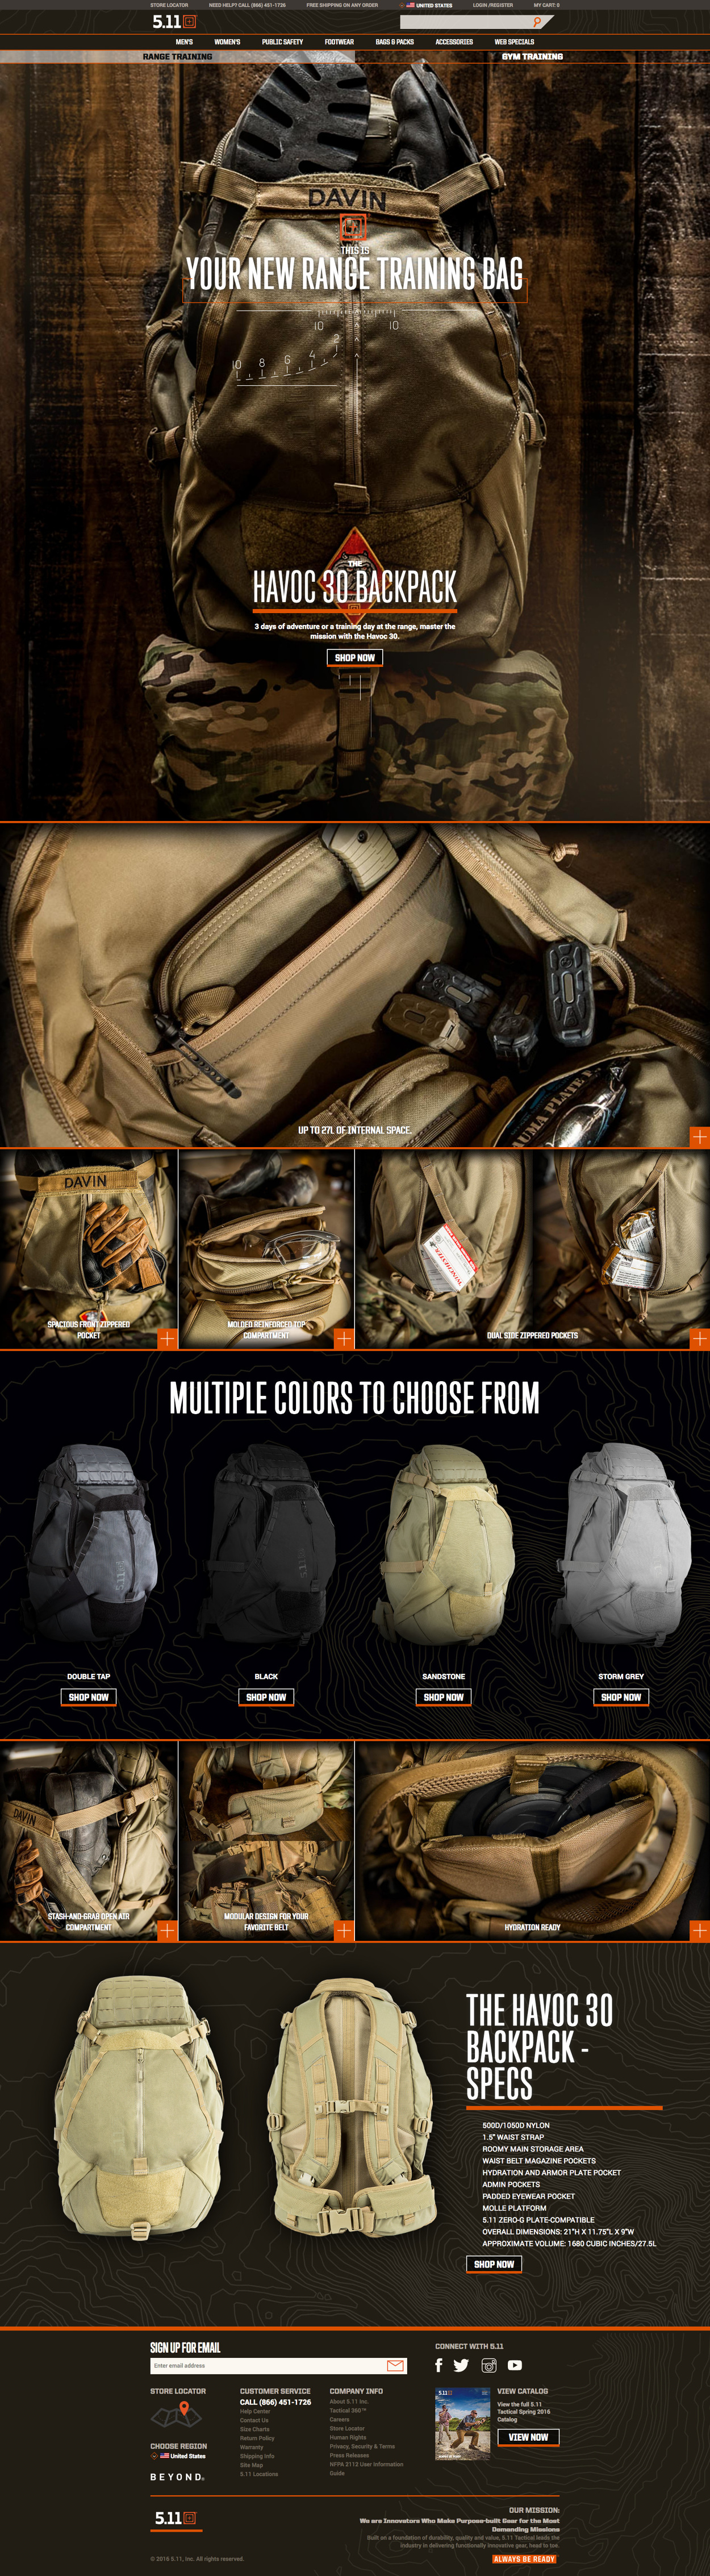 d741ef4d3d 5.11 Tactical Havoc 30 Backpack Landing Page design - Visual Foundry